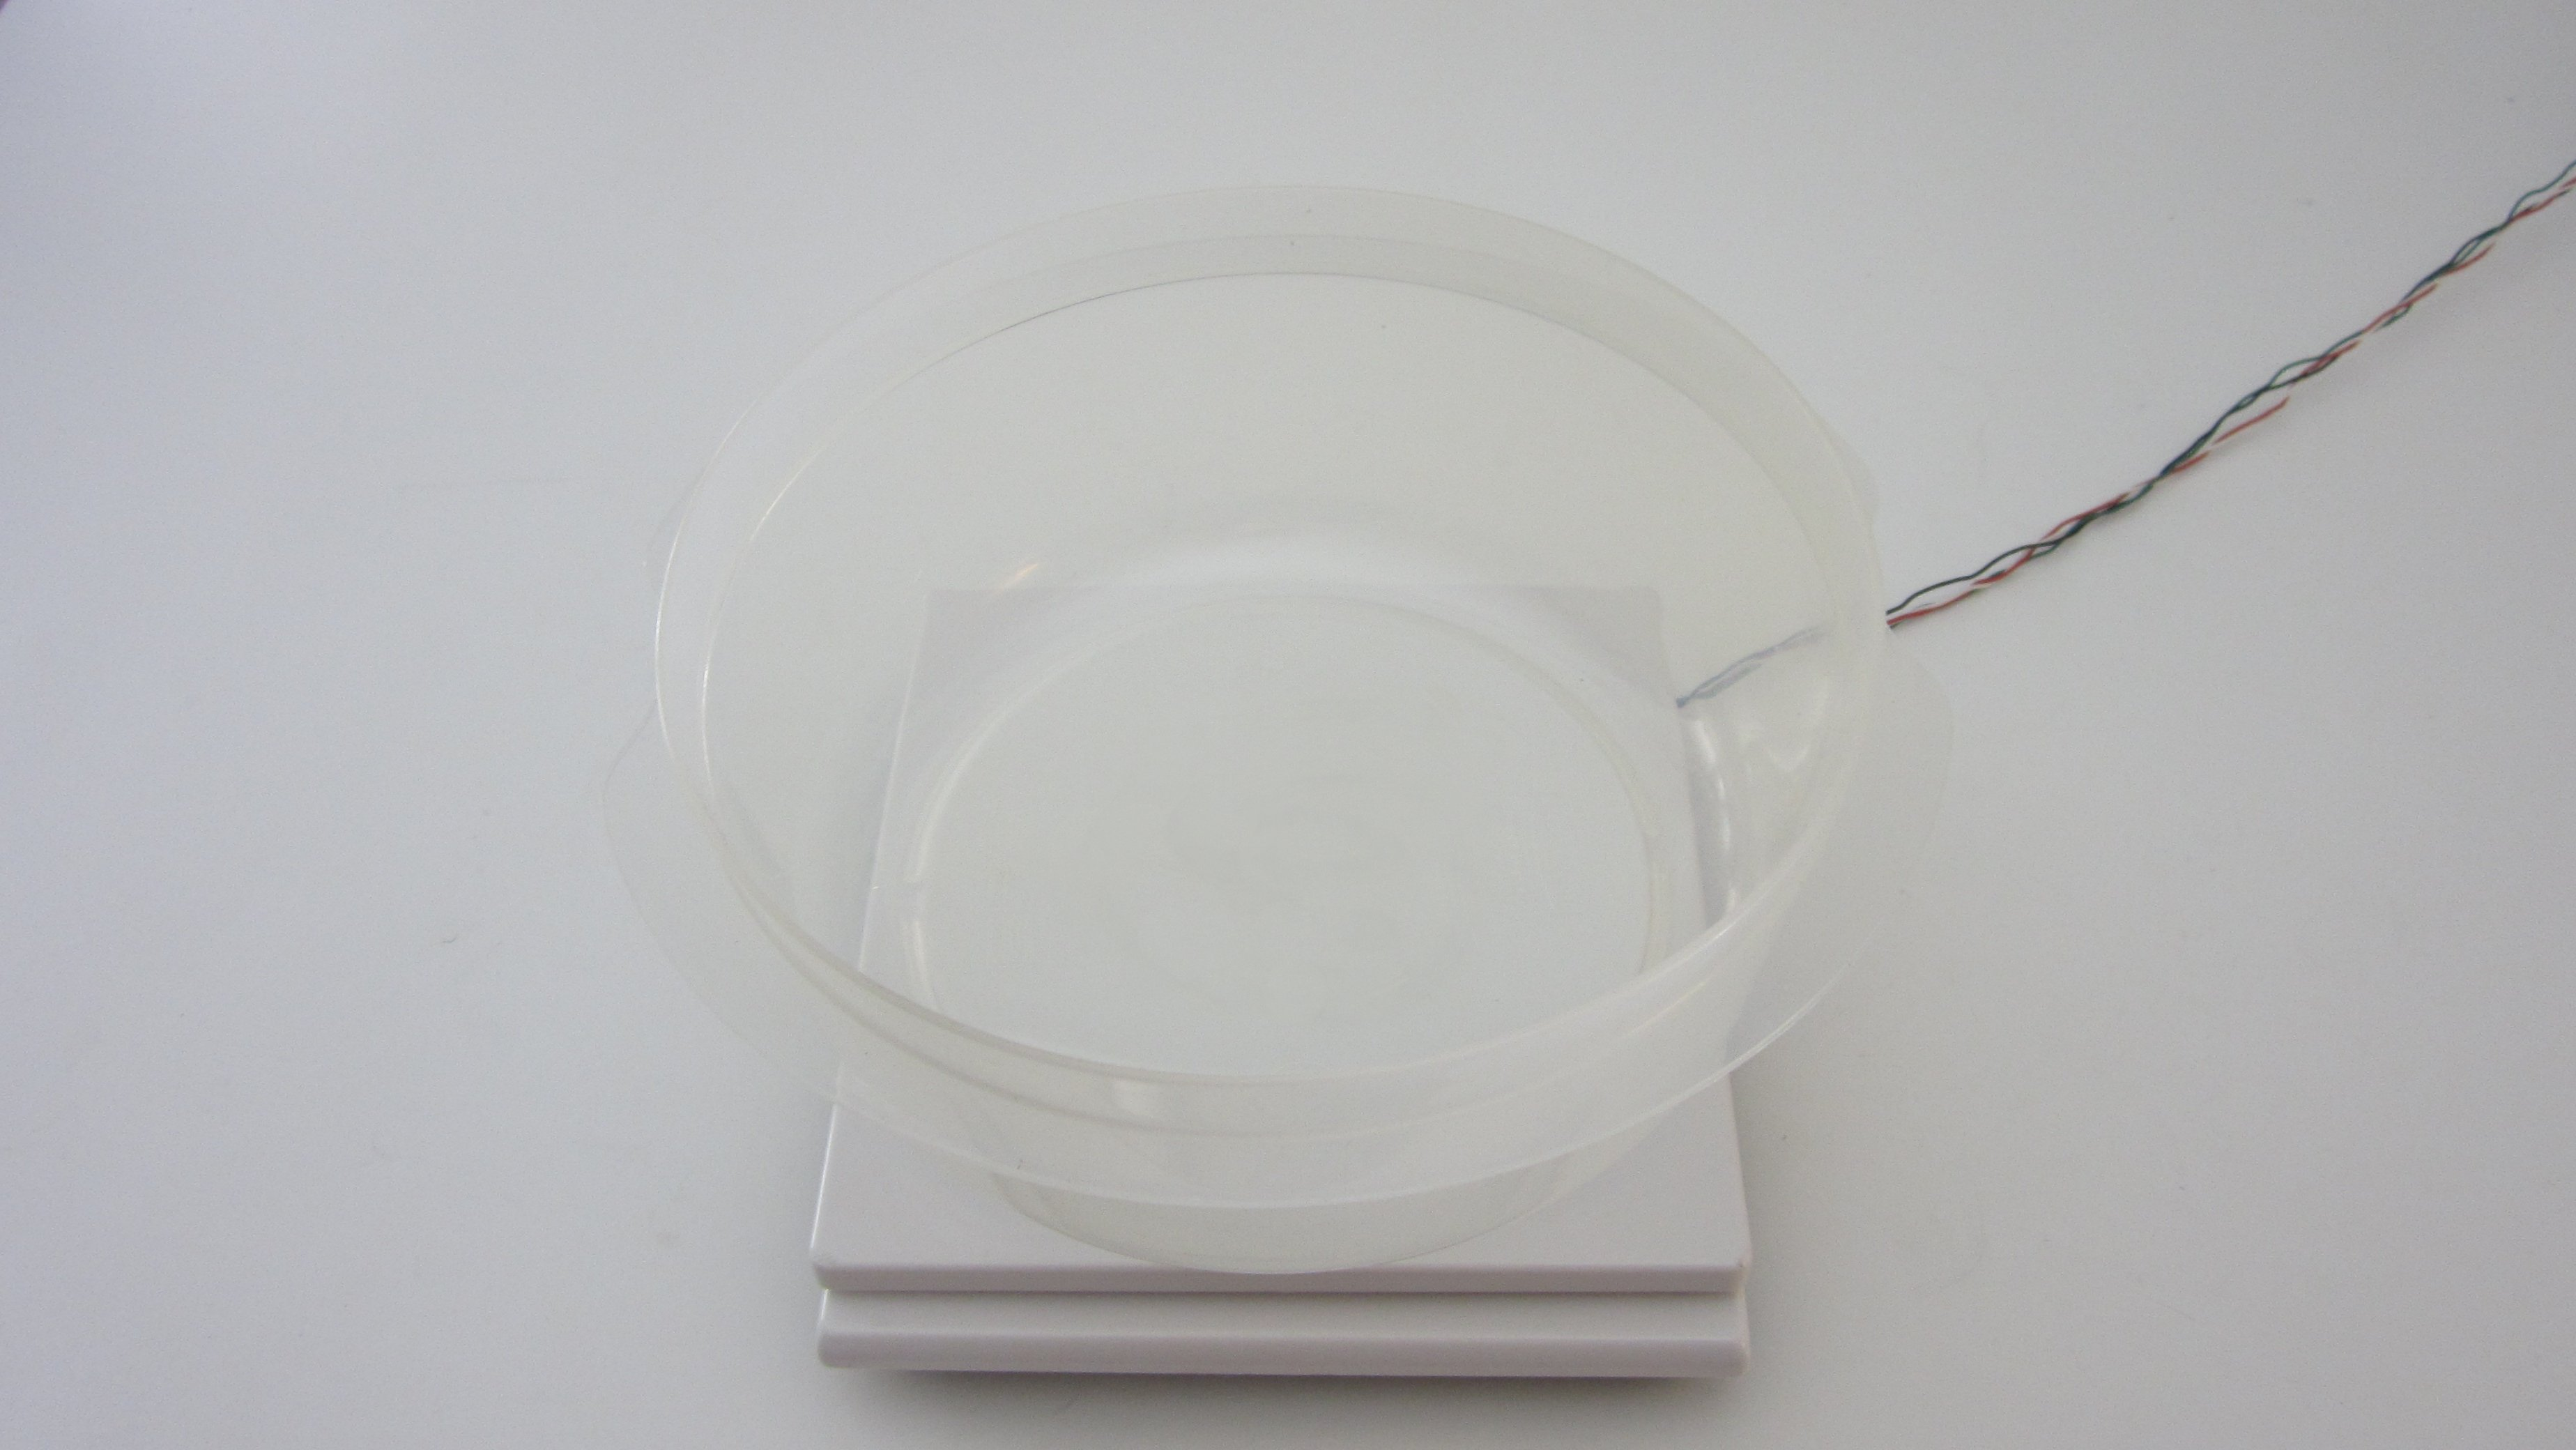 Picture of Mount a Bowl to the Plate to Catch the Snow